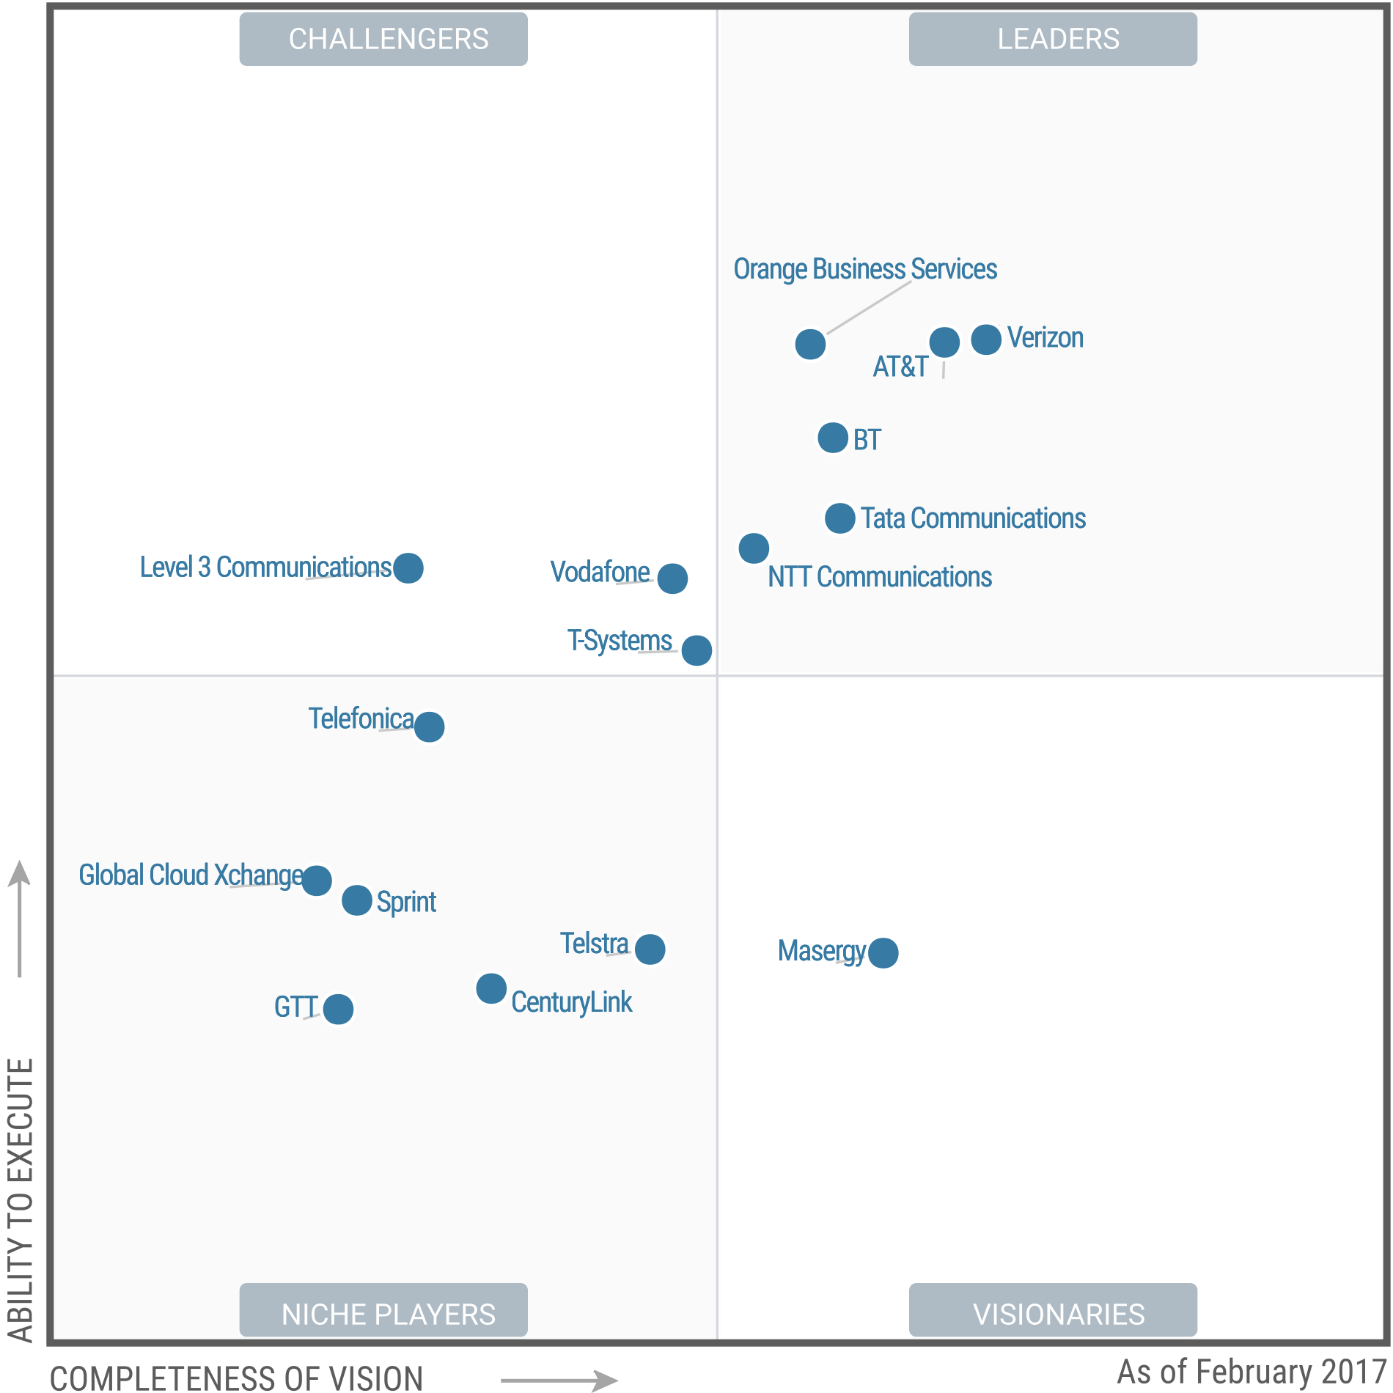 Magic Quadrant for Network Services 2017 (G00299950)